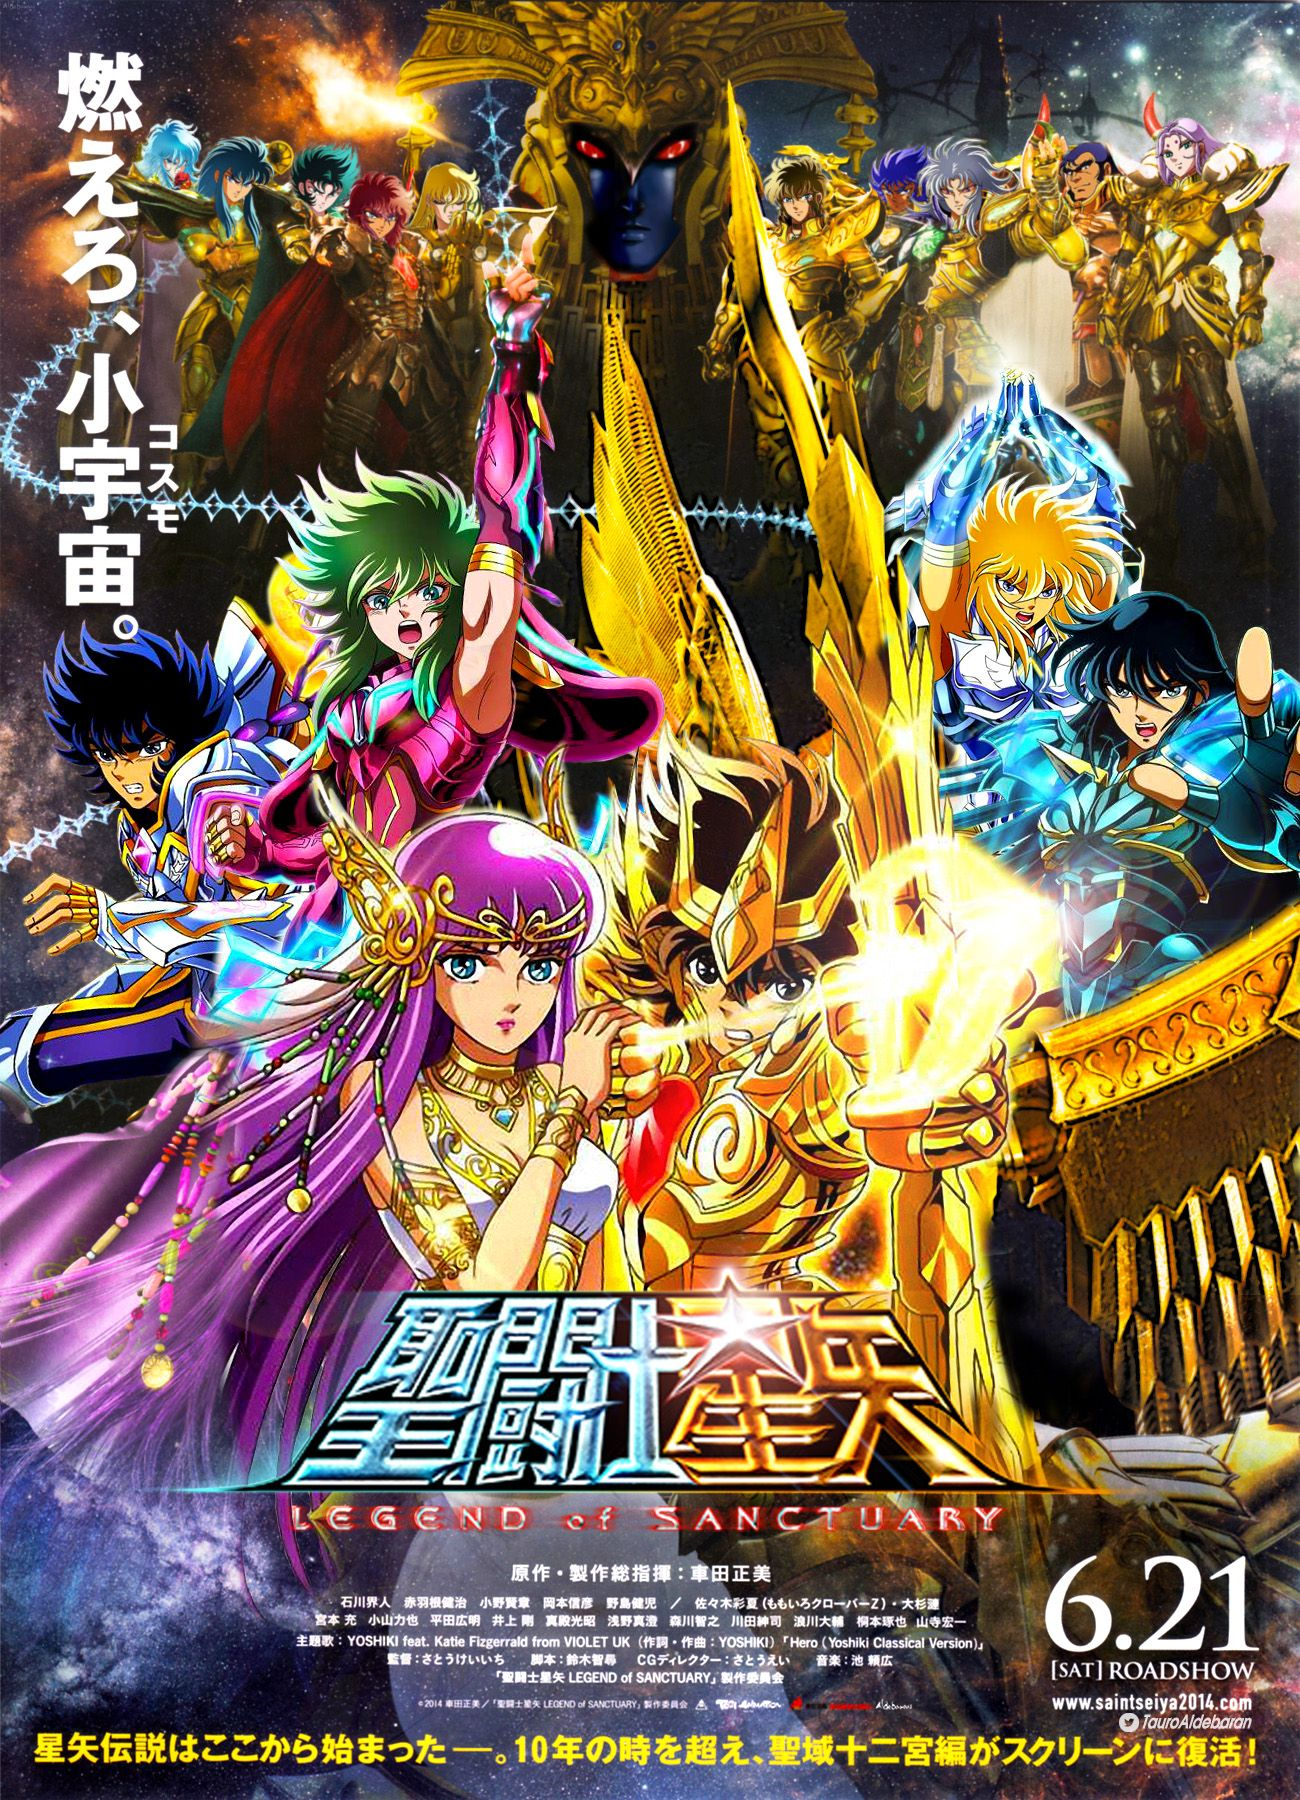 Saint Seiya: Legend of Sanctuary. Dont have time to watch the original , this movie can provide you a brief story of it, with 3D animation as bonus